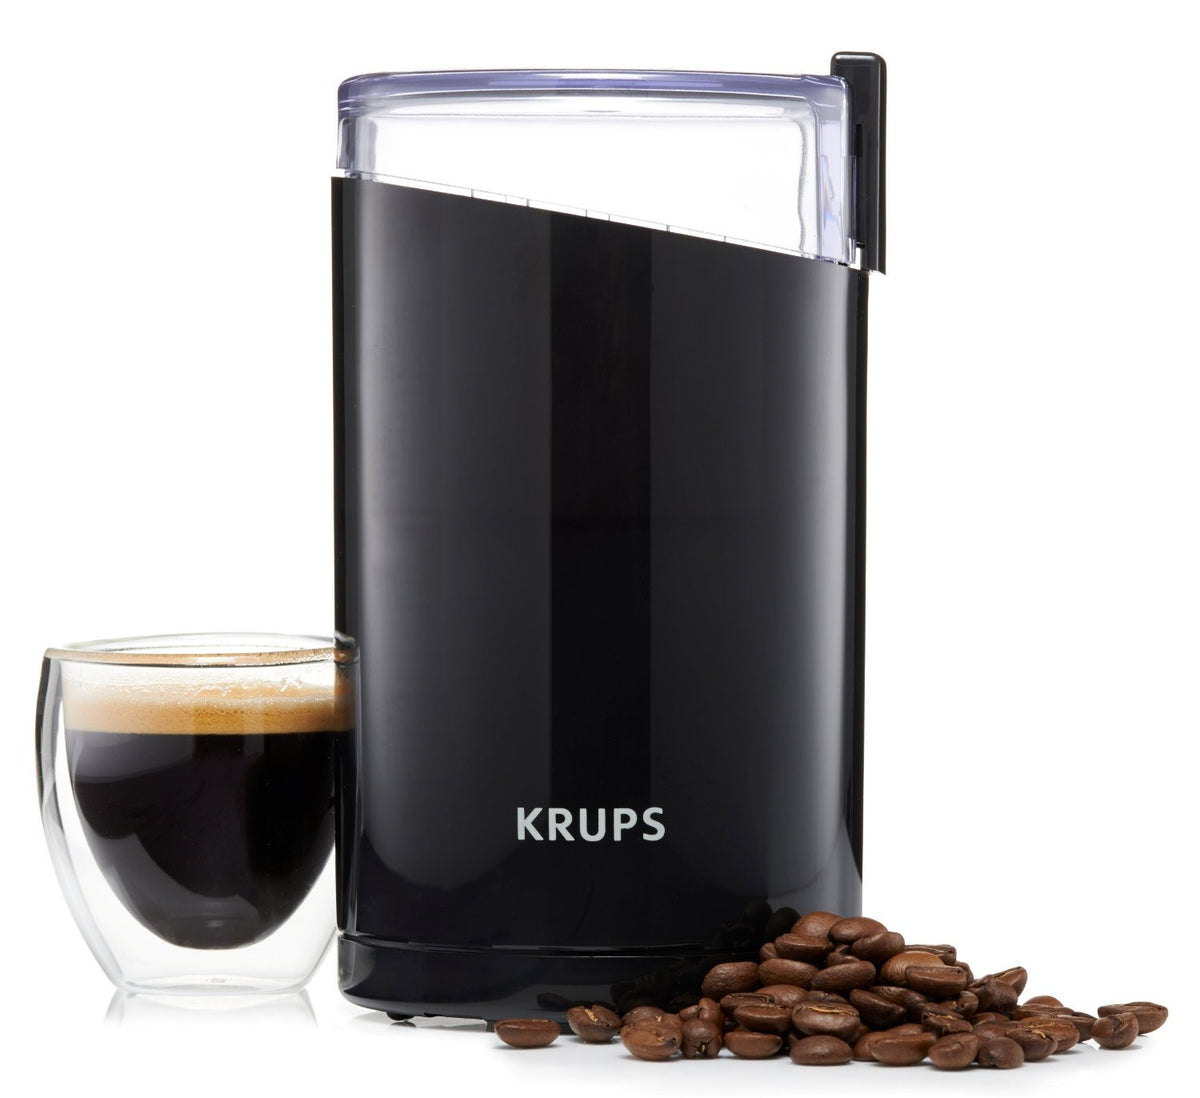 Electric Spice and Coffee Grinder with Stainless Steel Blades, 3-Ounce, Black - All In One Place With Us - 4